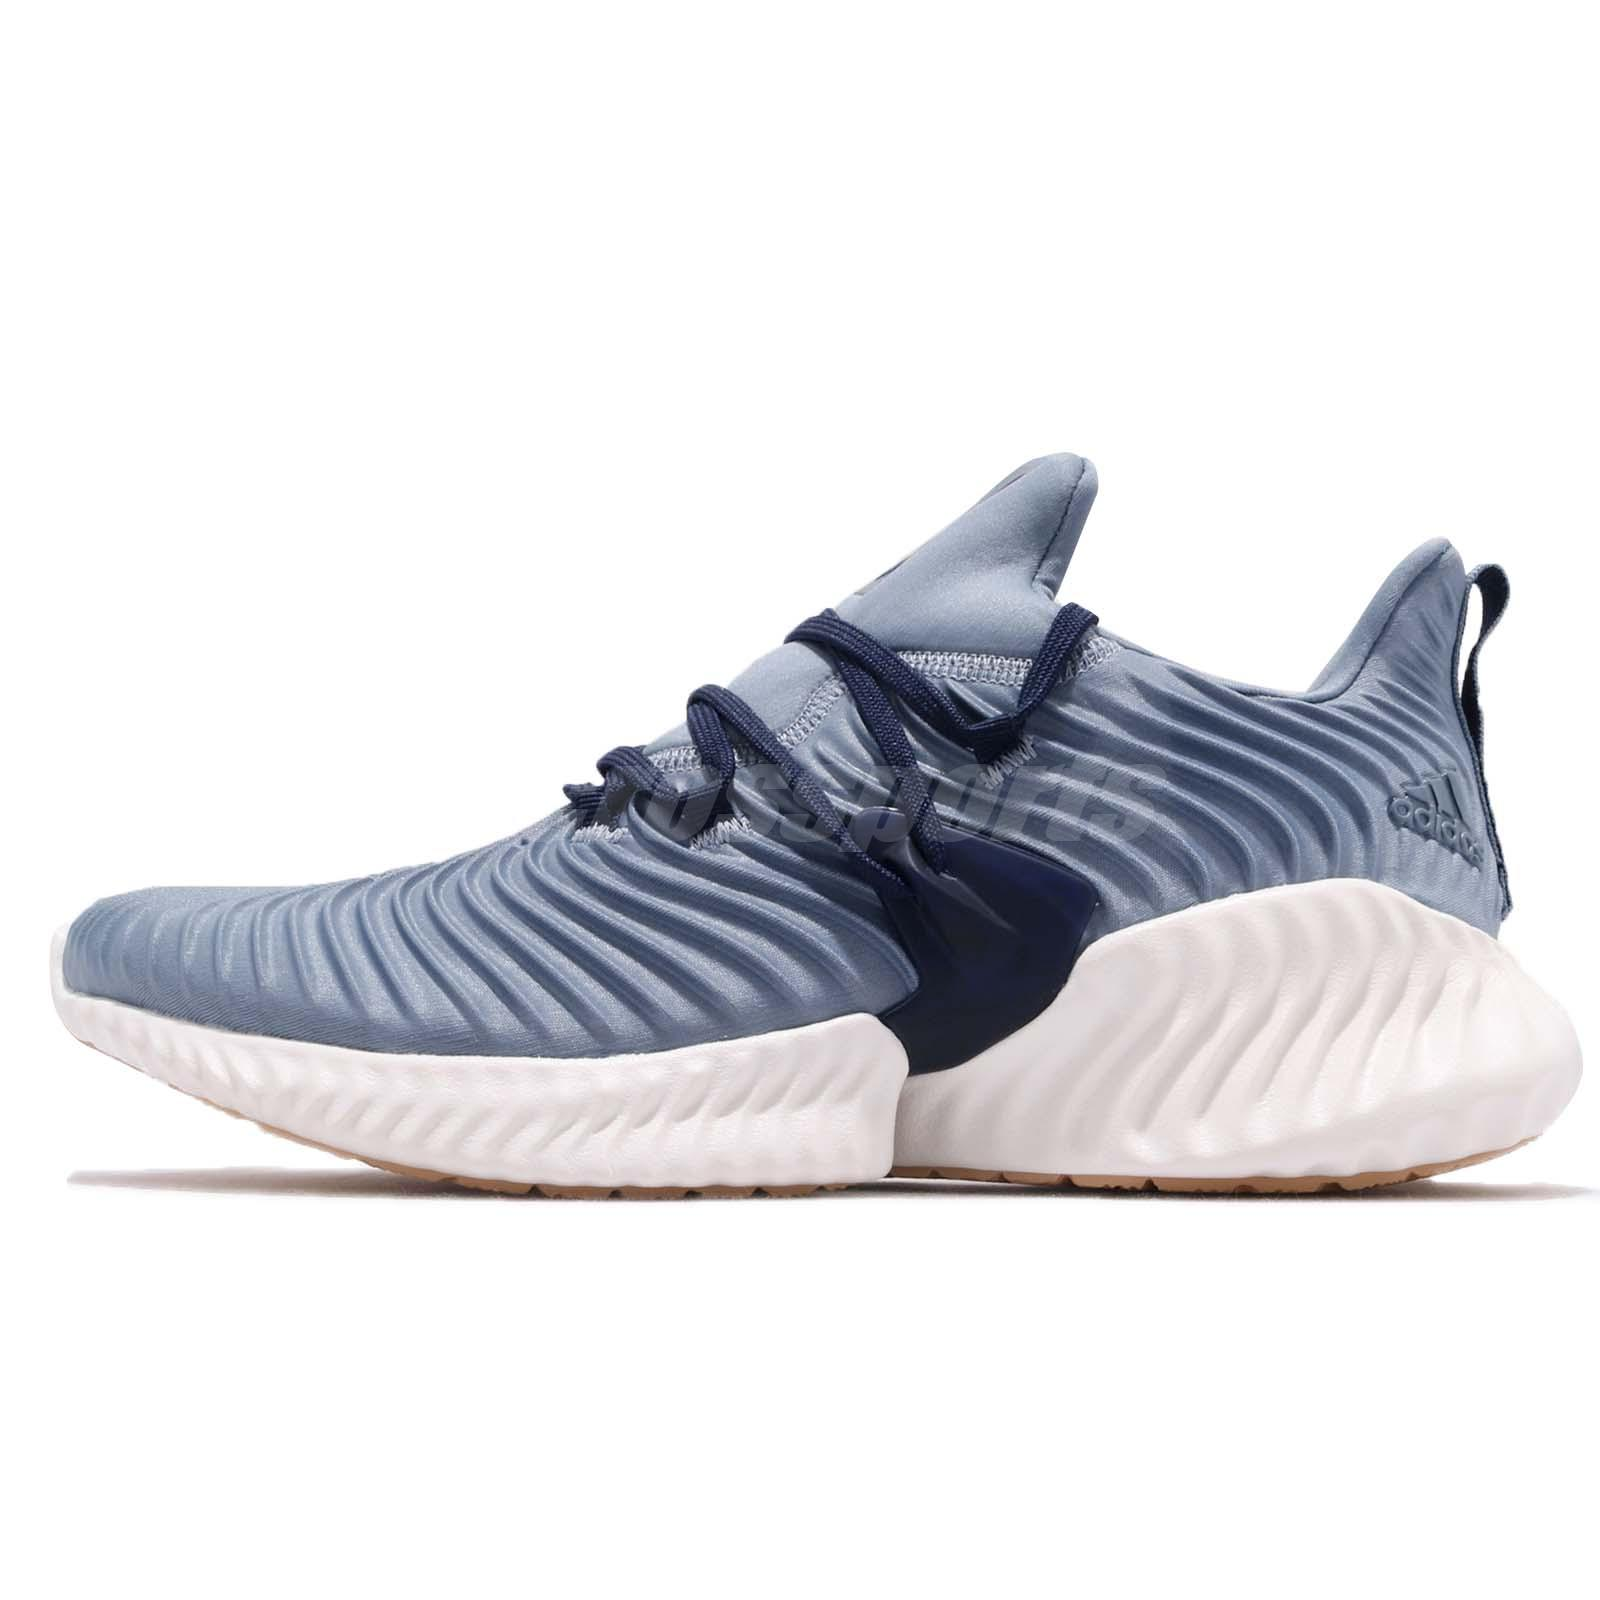 buy online 4e859 77526 Details about adidas Alphabounce Instinct M Raw Grey Blue Mens Running  Shoes BOUNCE B27817